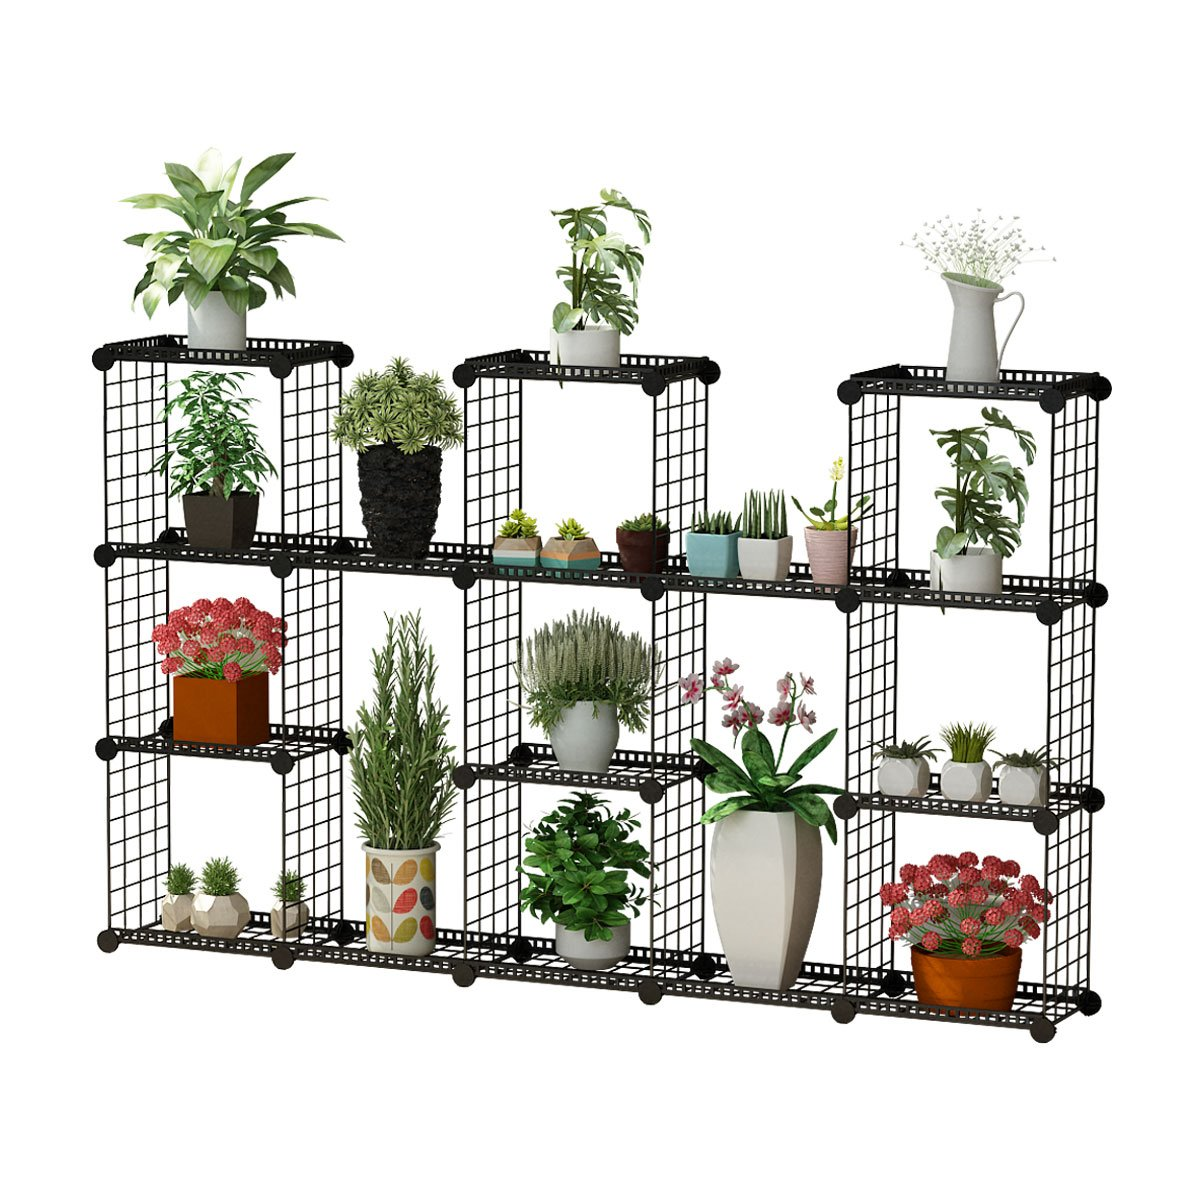 JYYG Portable Plant Stands Custom Shaped Succulents Pot Shelf Standing Baker's Racks for Flowers Metal Shelving Unit for Green House Indoor Outdoor Multifunction Storage Organizer, 11-Grid Black